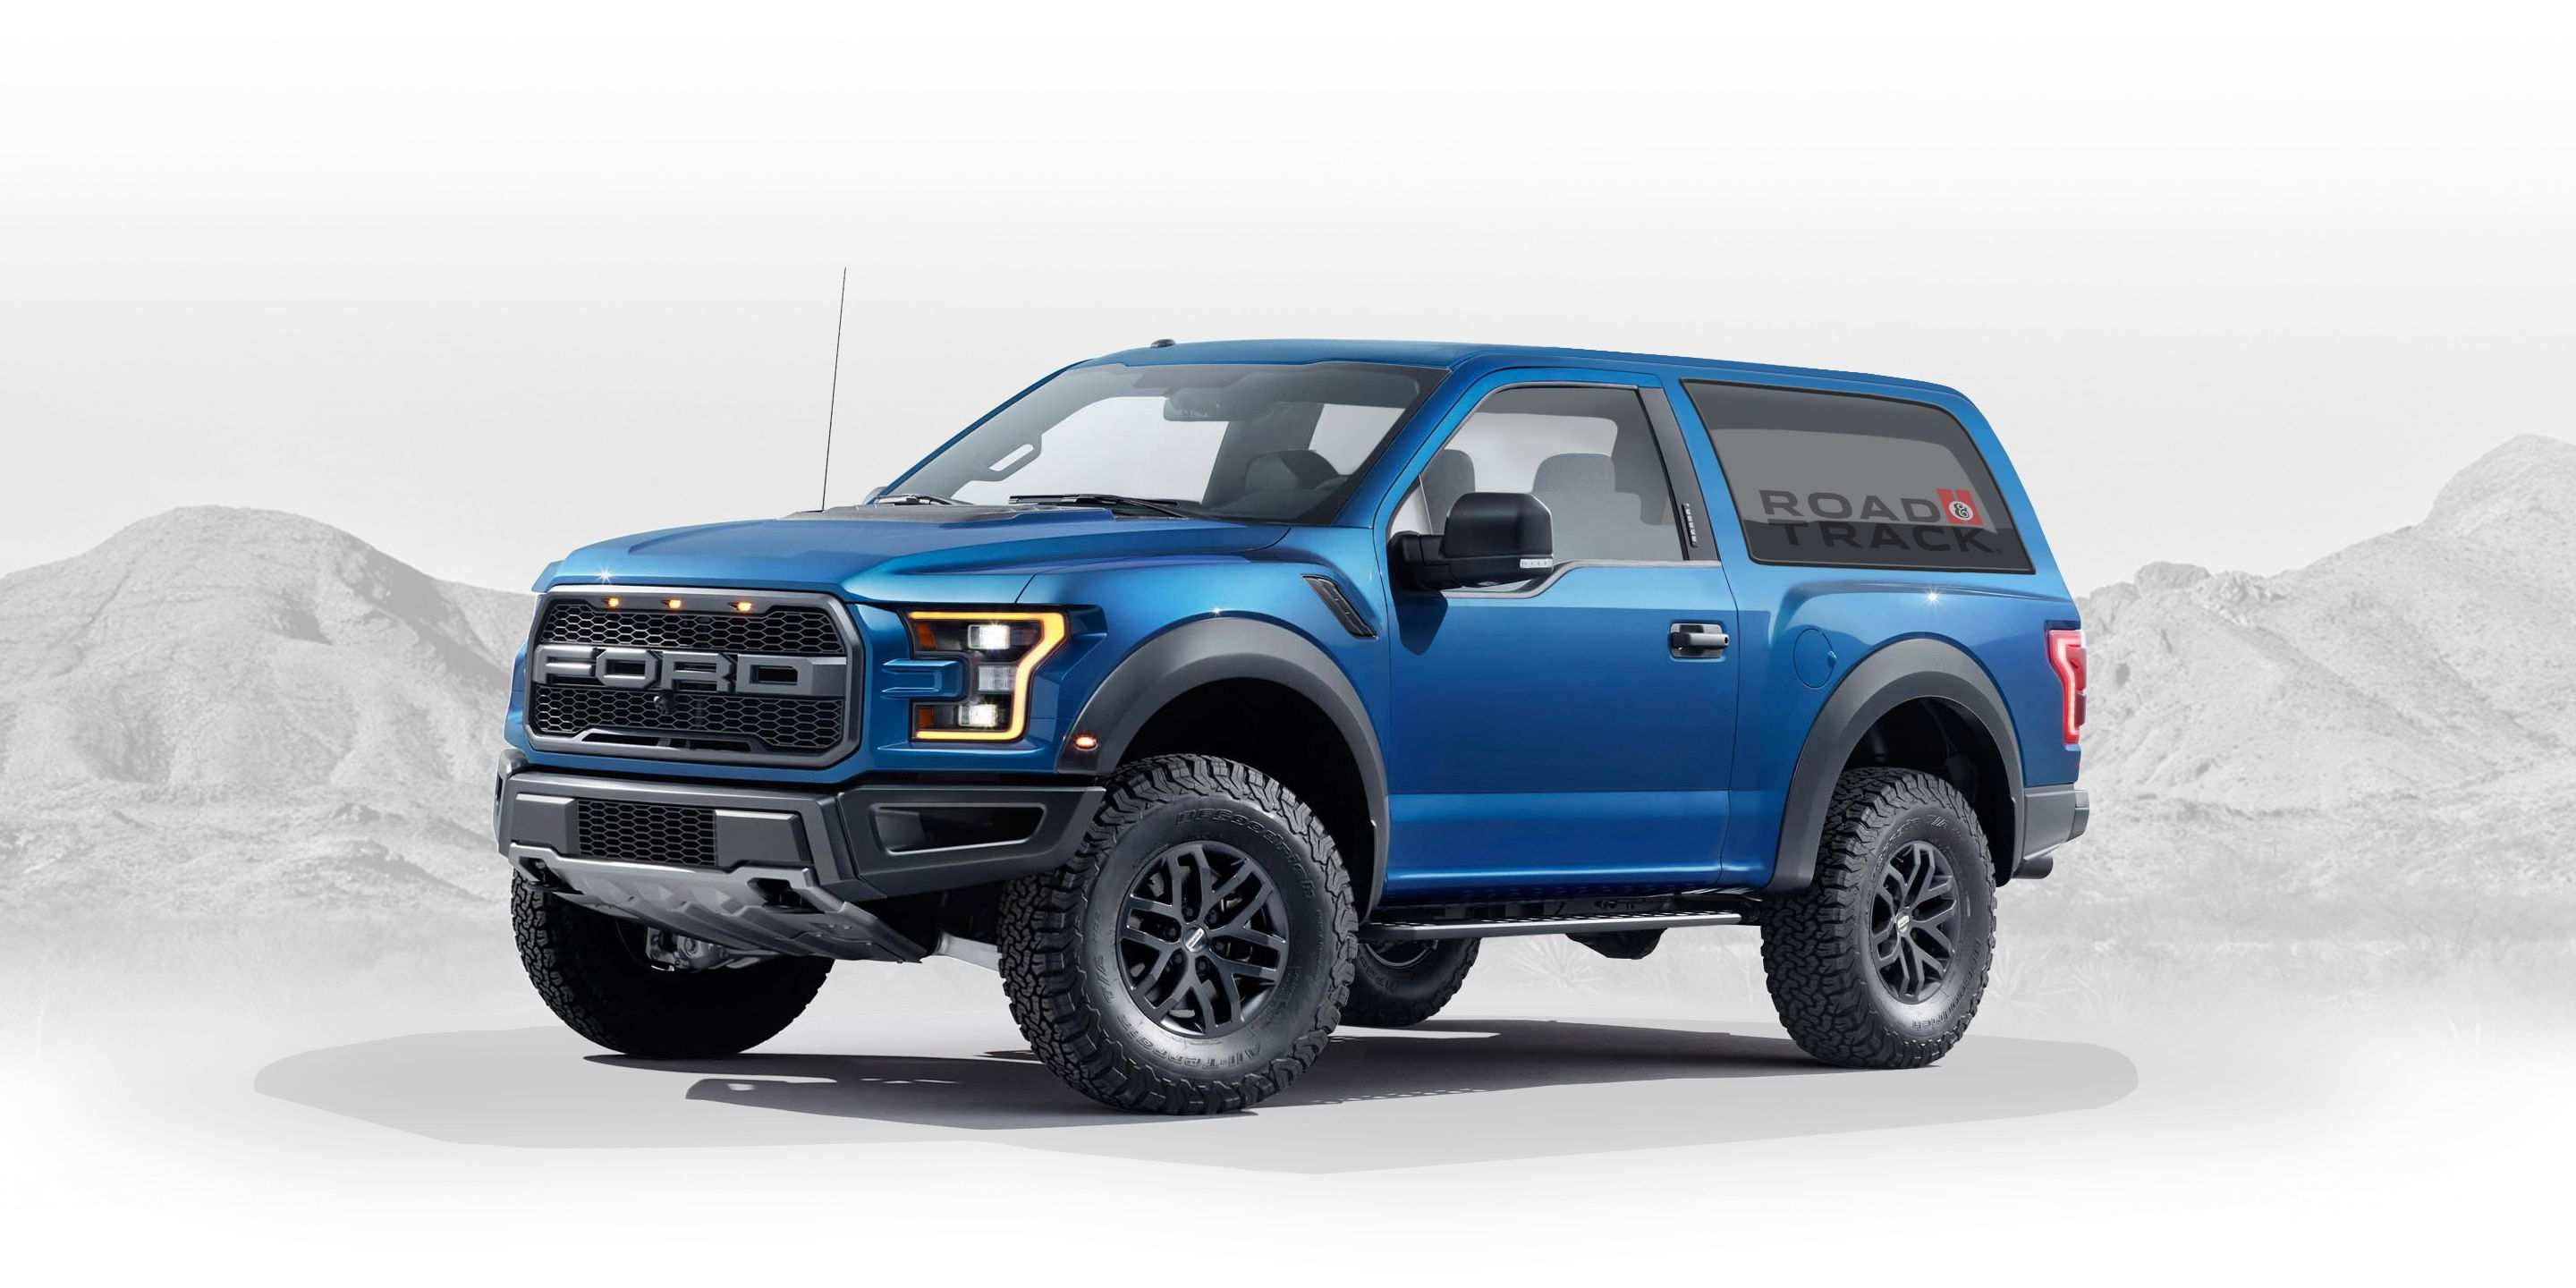 61 Gallery of 2020 Ford F150 Svt Raptor First Drive for 2020 Ford F150 Svt Raptor